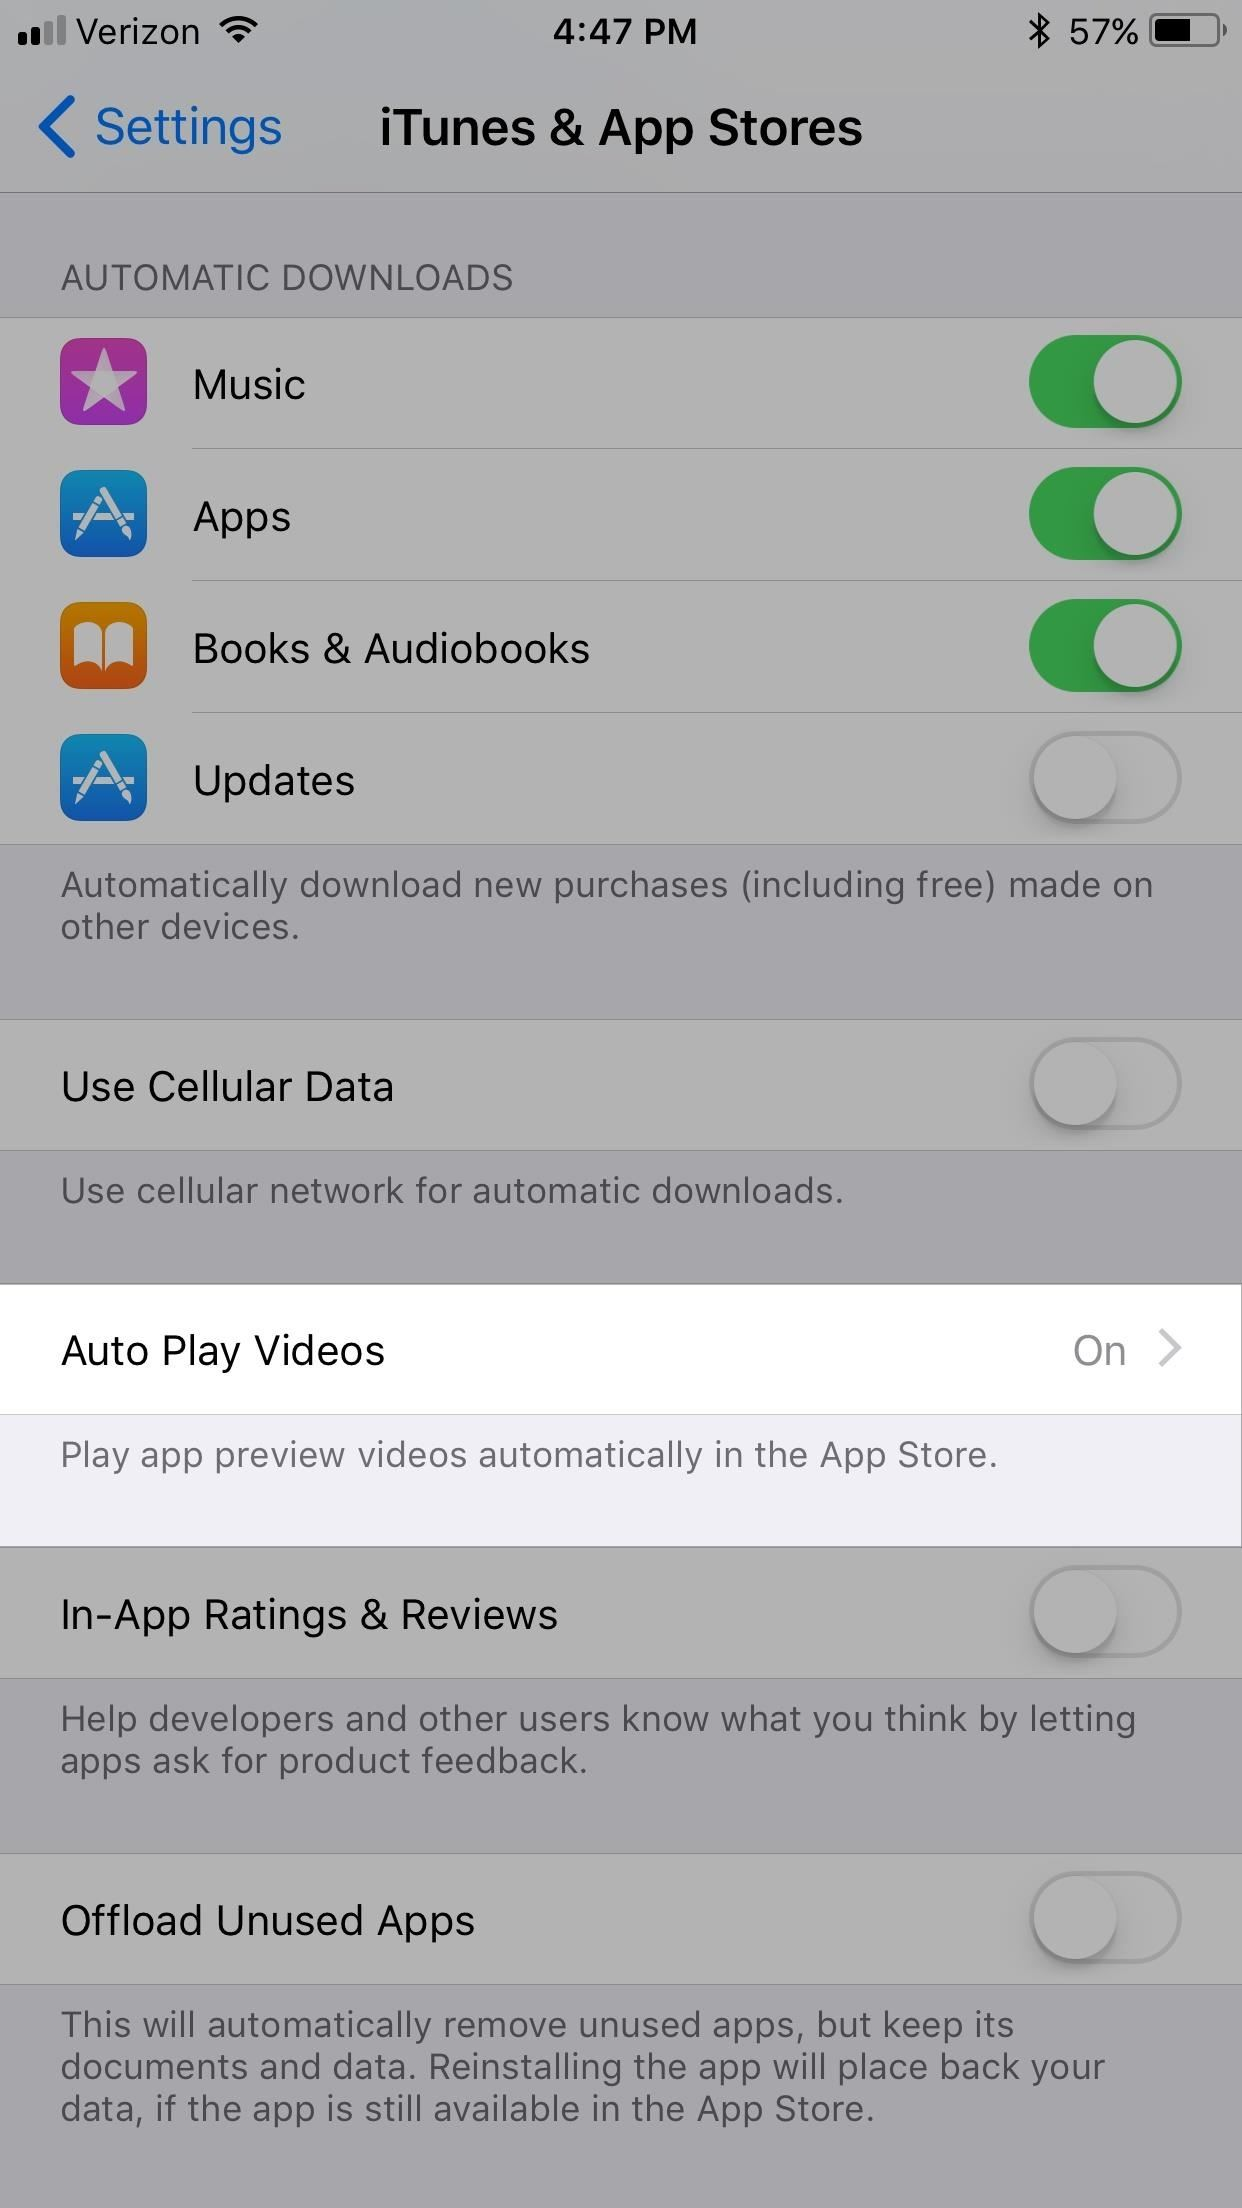 How to Disable Auto-Playing Videos in the iOS 11 App Store